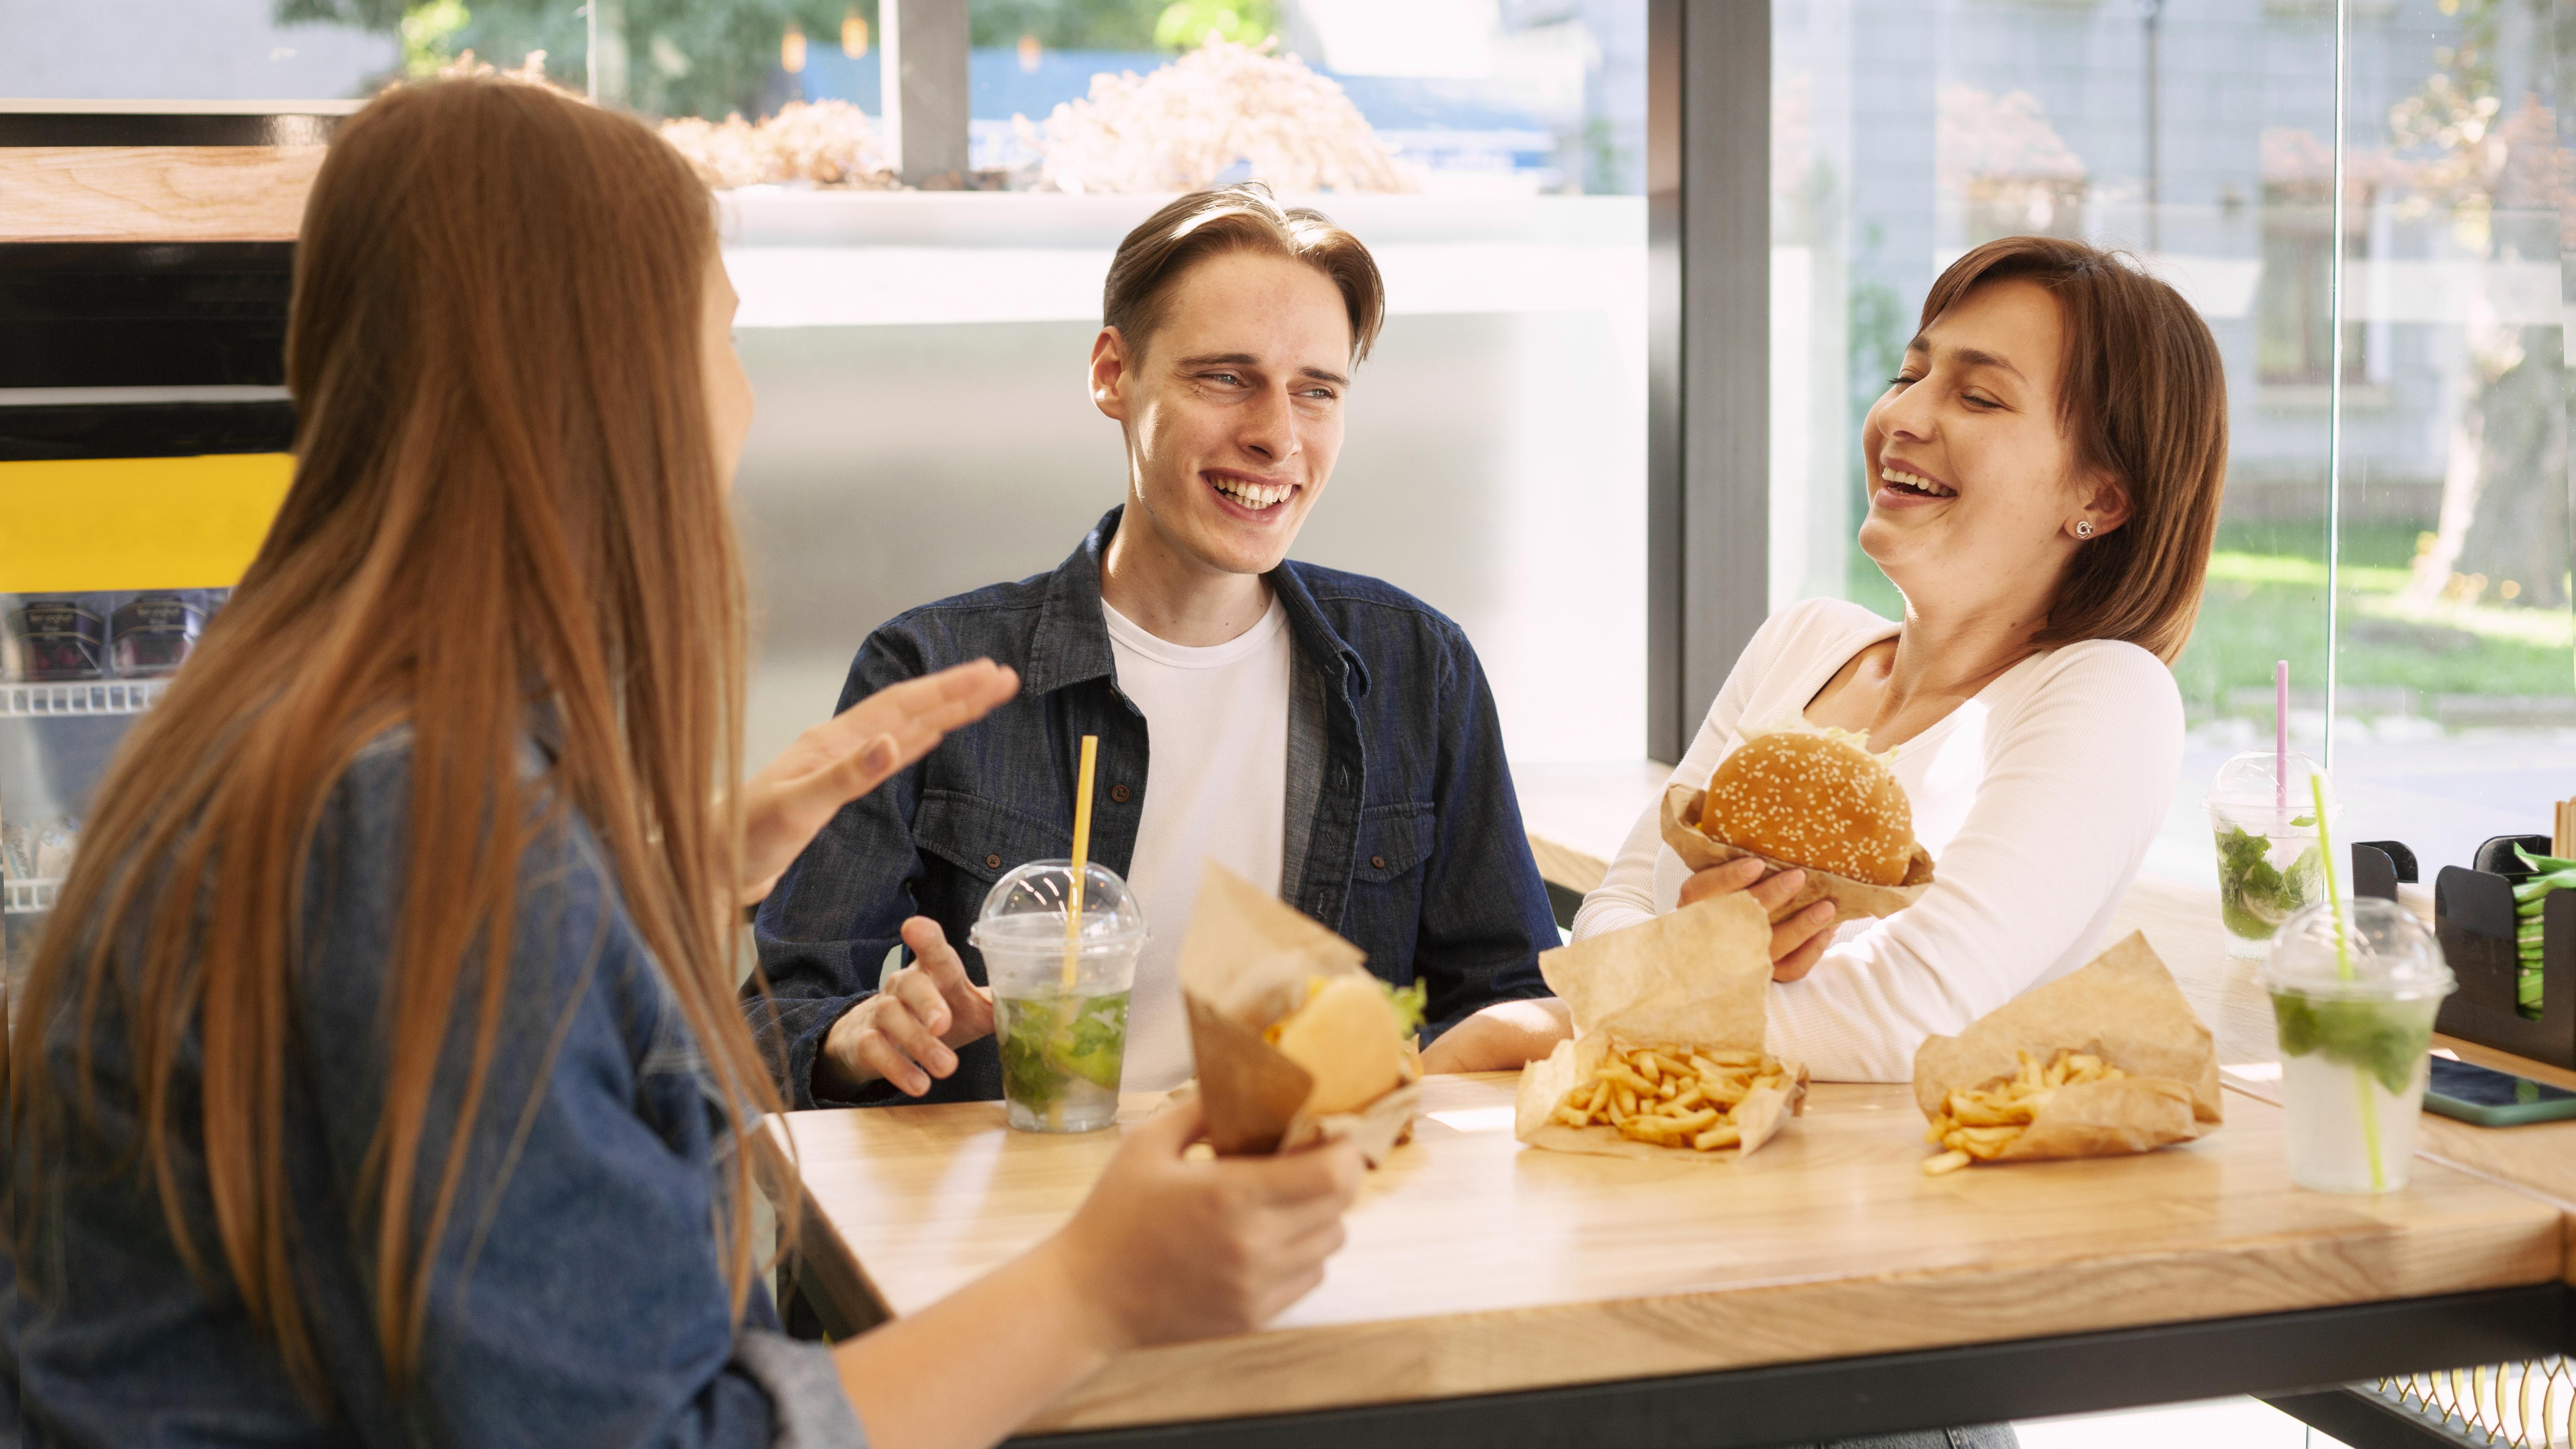 group-smiley-friends-fast-food-restaurant-1